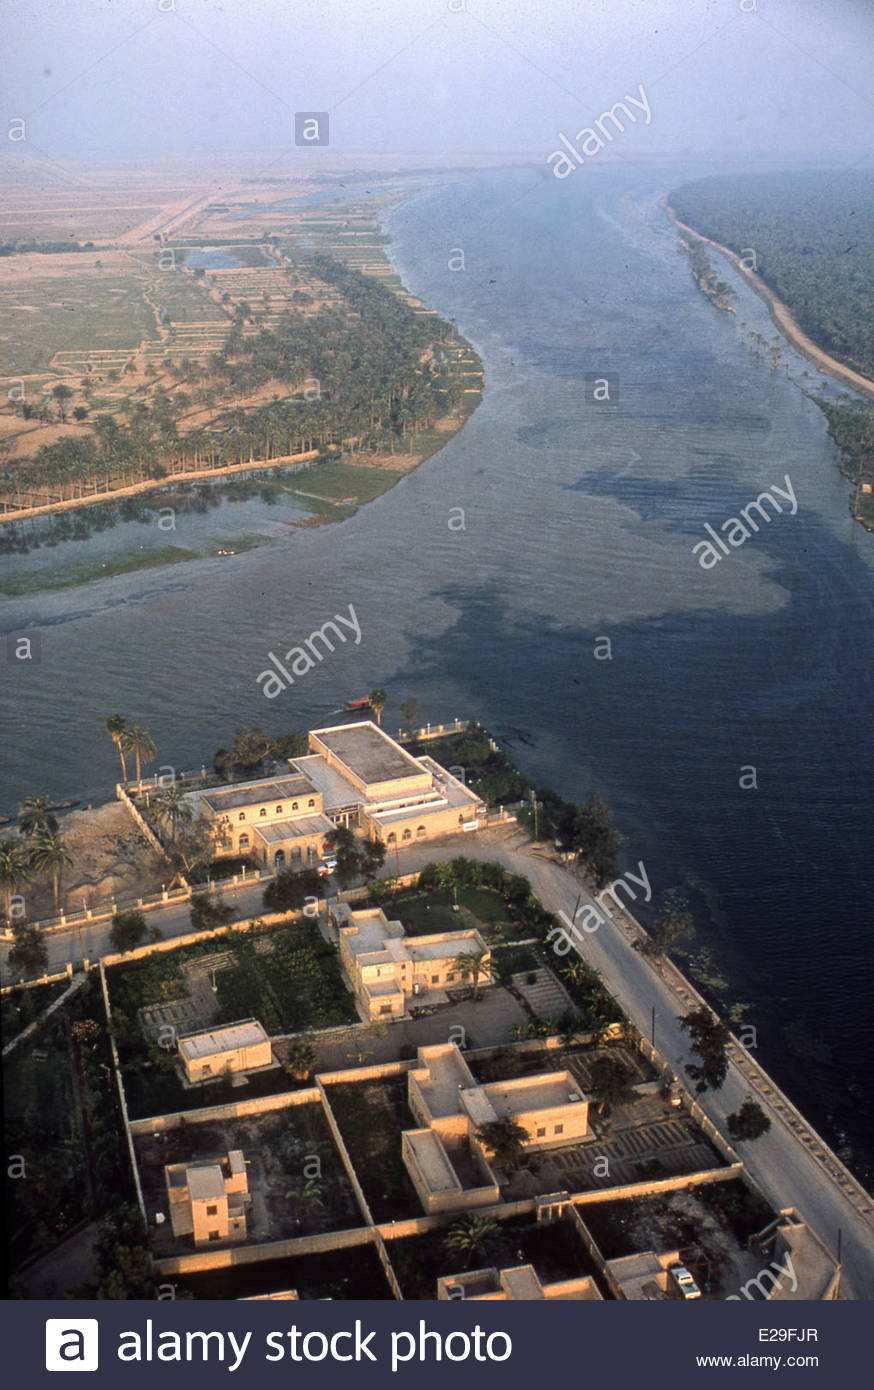 Aerial view of confluence of euphrates and tigris rivers at qurna stock photo 70280639 alamy River flowing from the garden of eden